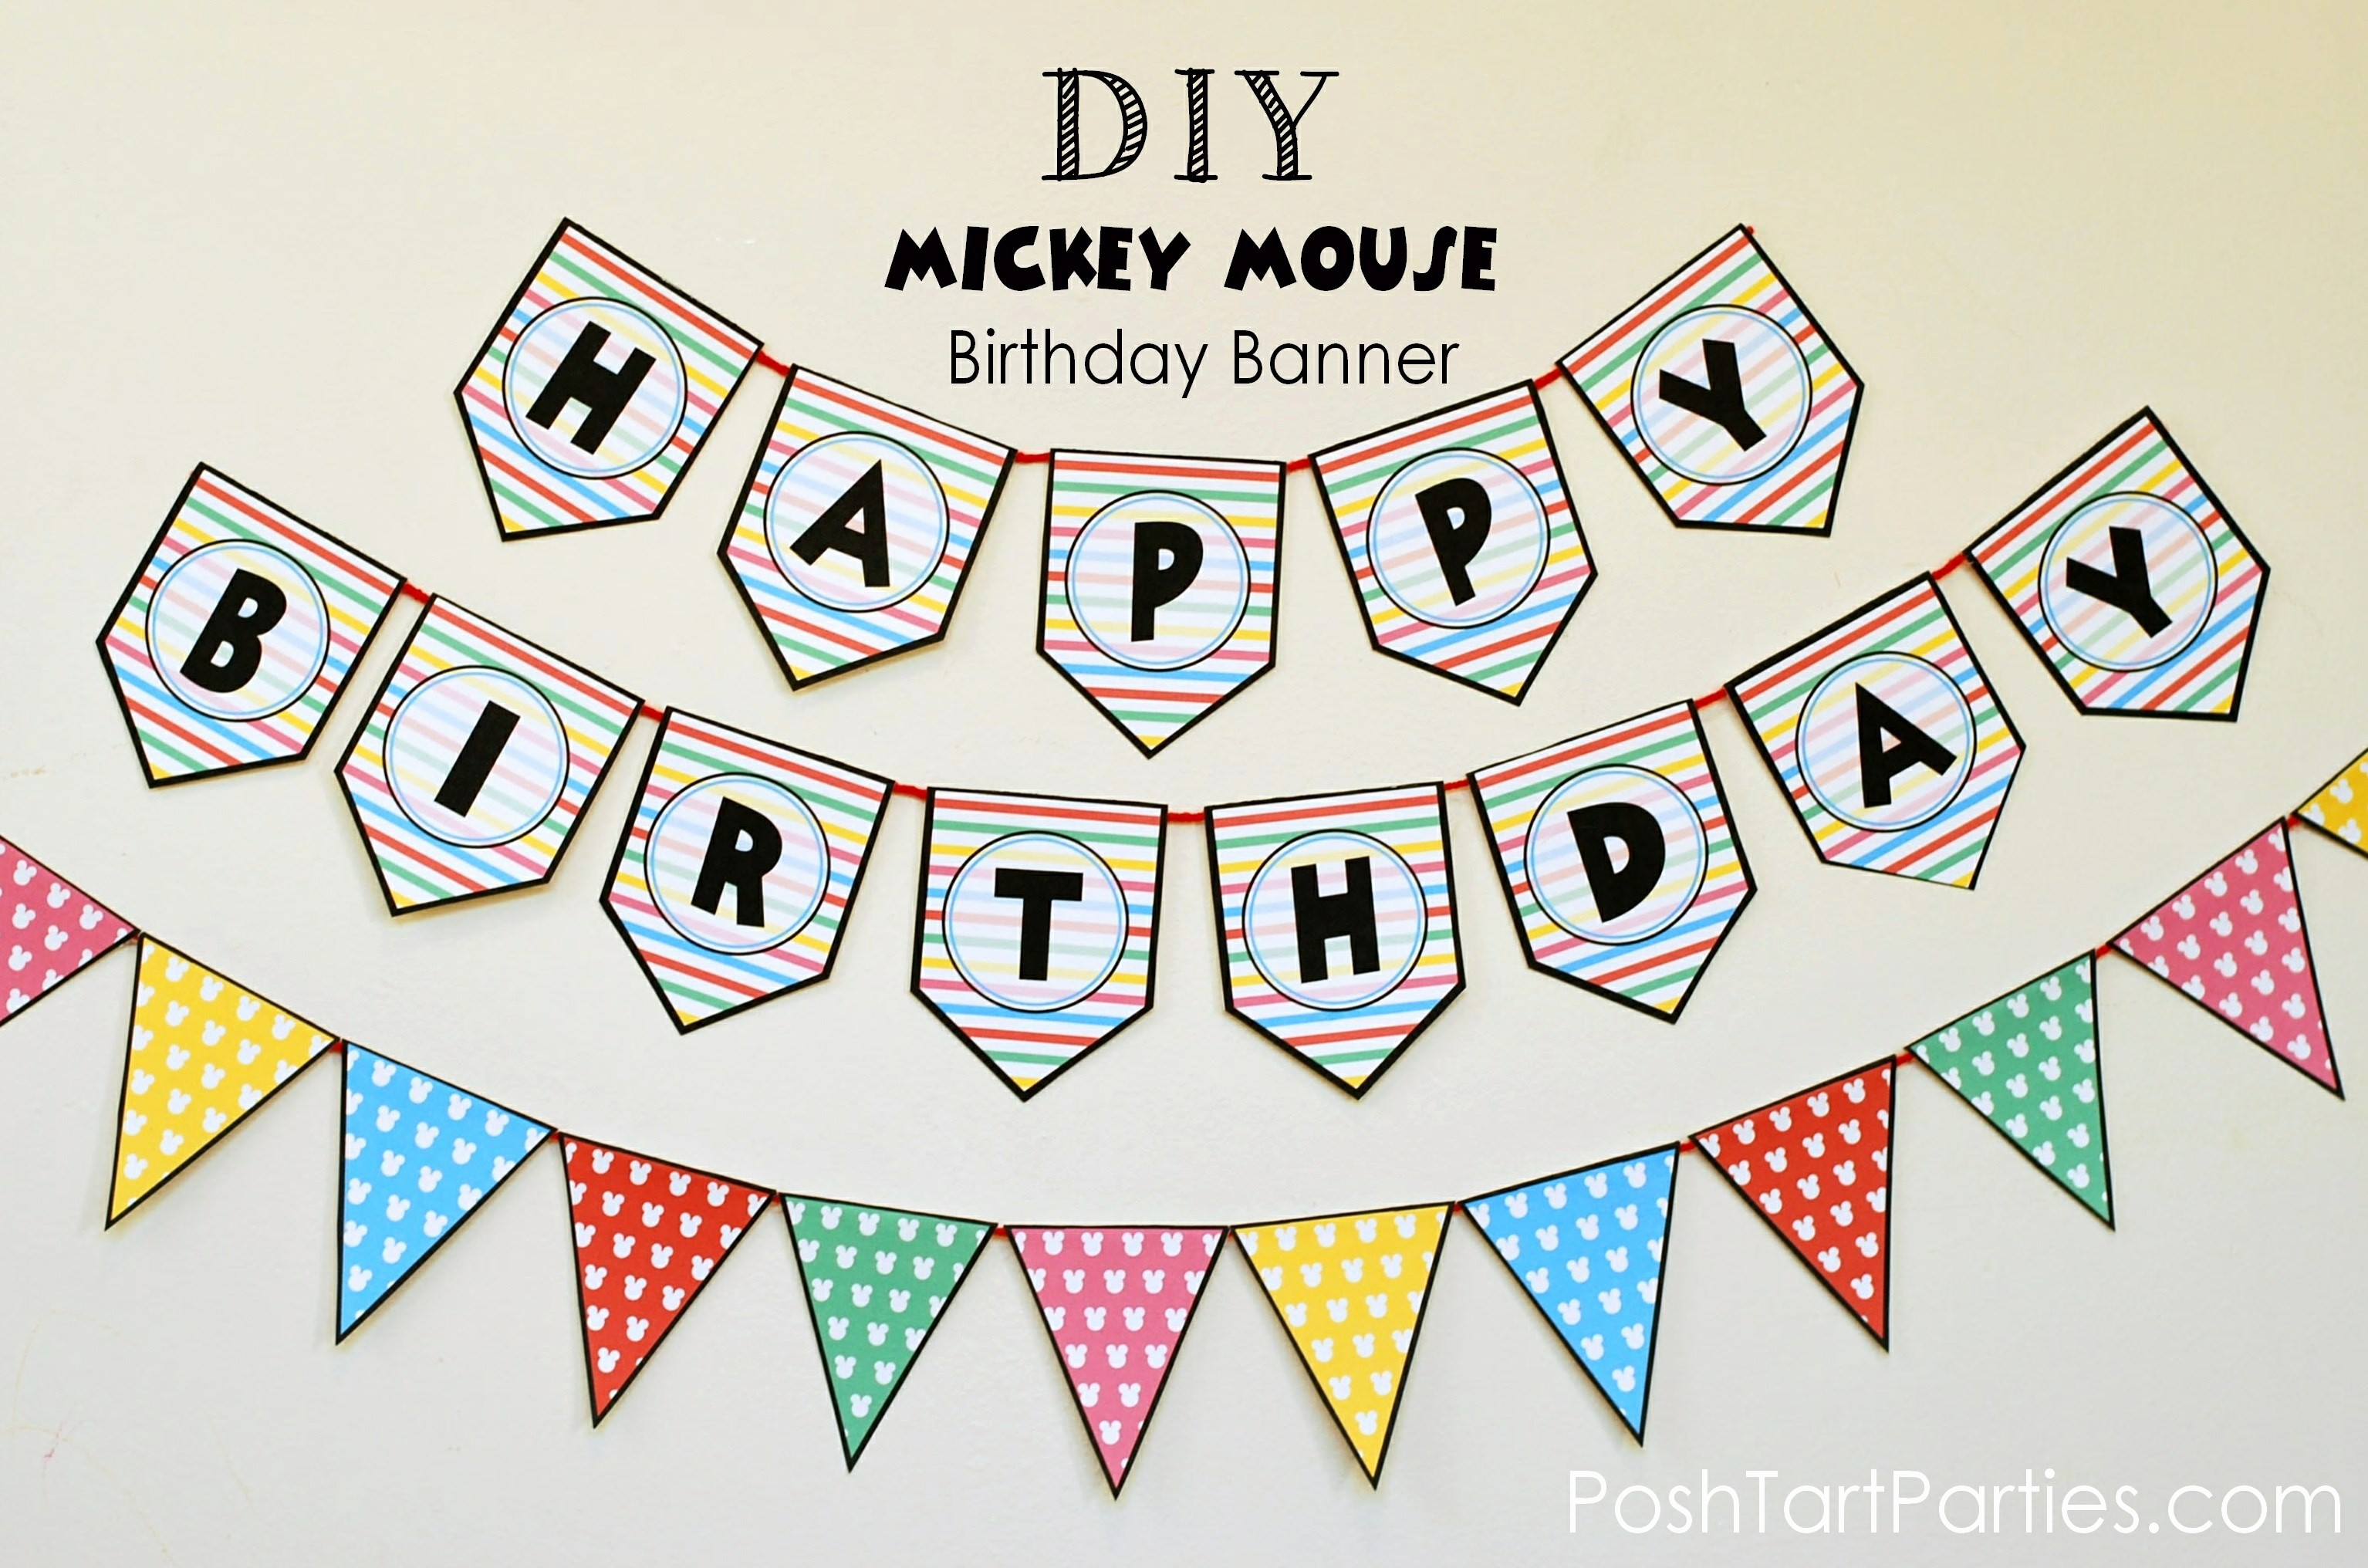 Free Printable Birthday Banner Templates Elegant Printables & Freebies